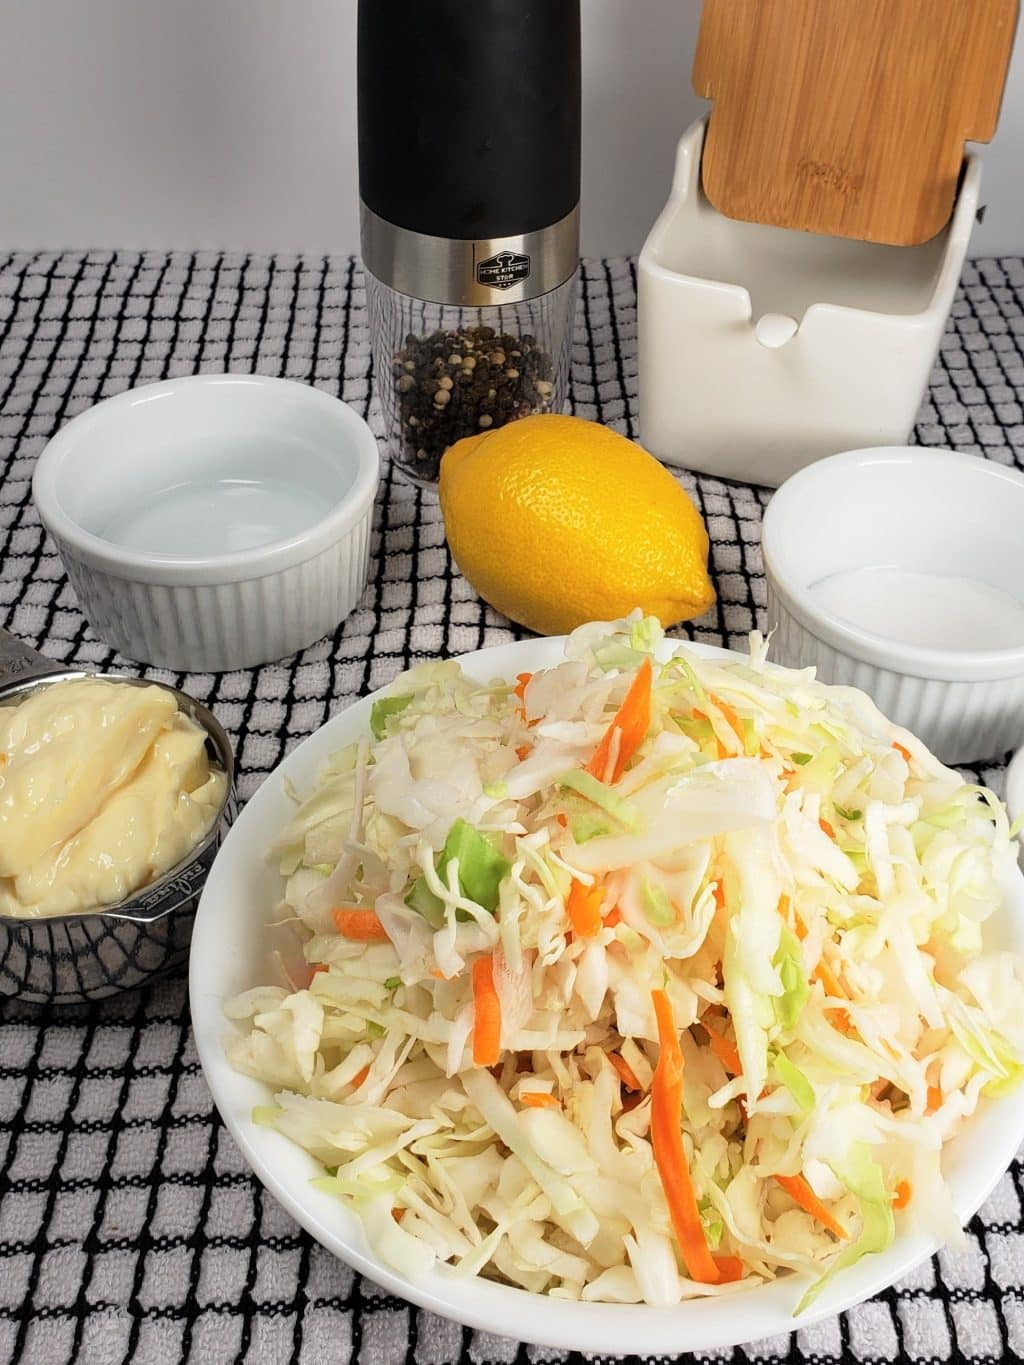 Cast of Ingredients for Easy Coleslaw